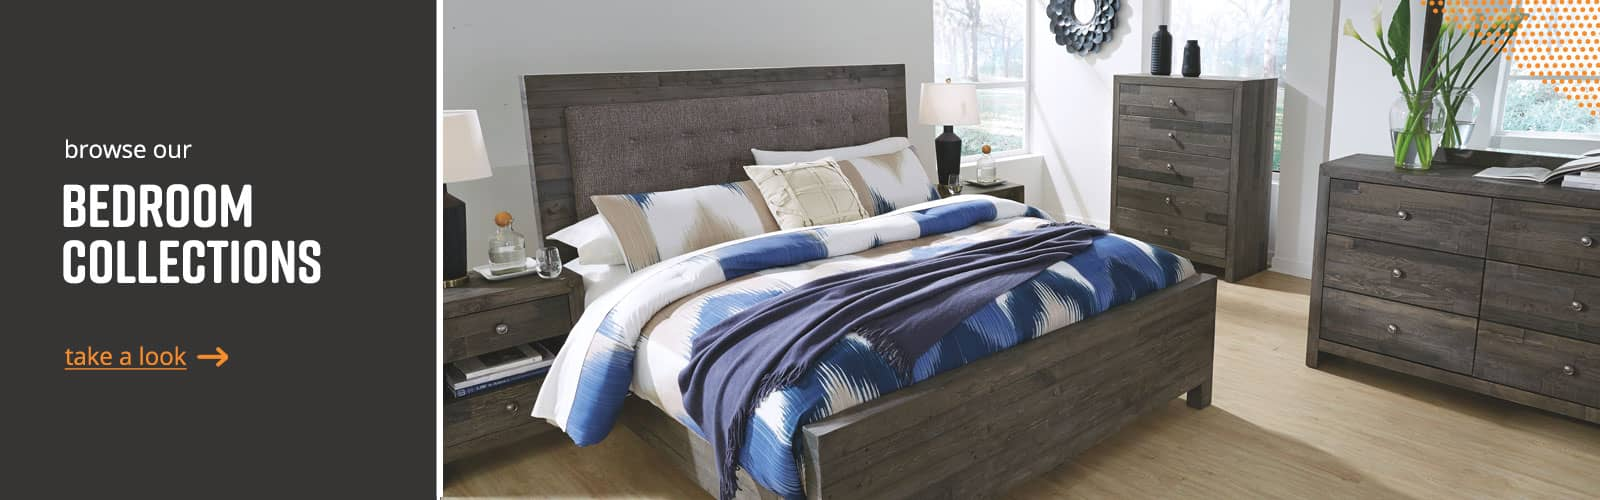 Home Furniture And Decor For Sale Online Durban South Africa